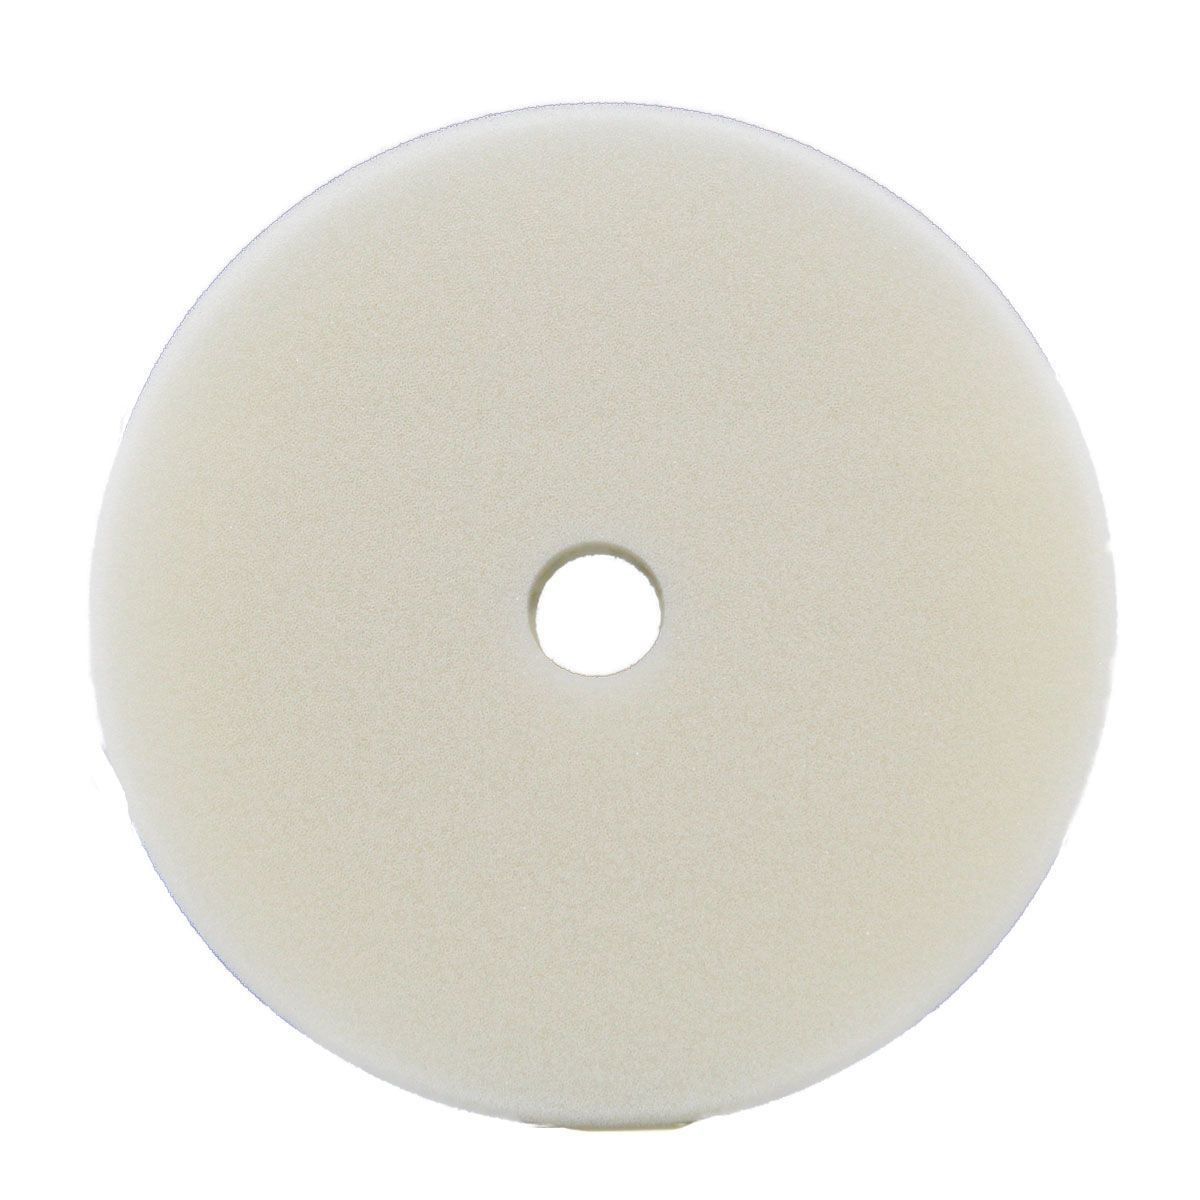 Rupes White Foam Pad is the softest pad Rupes makes and is designed for the final polishing or waxing step